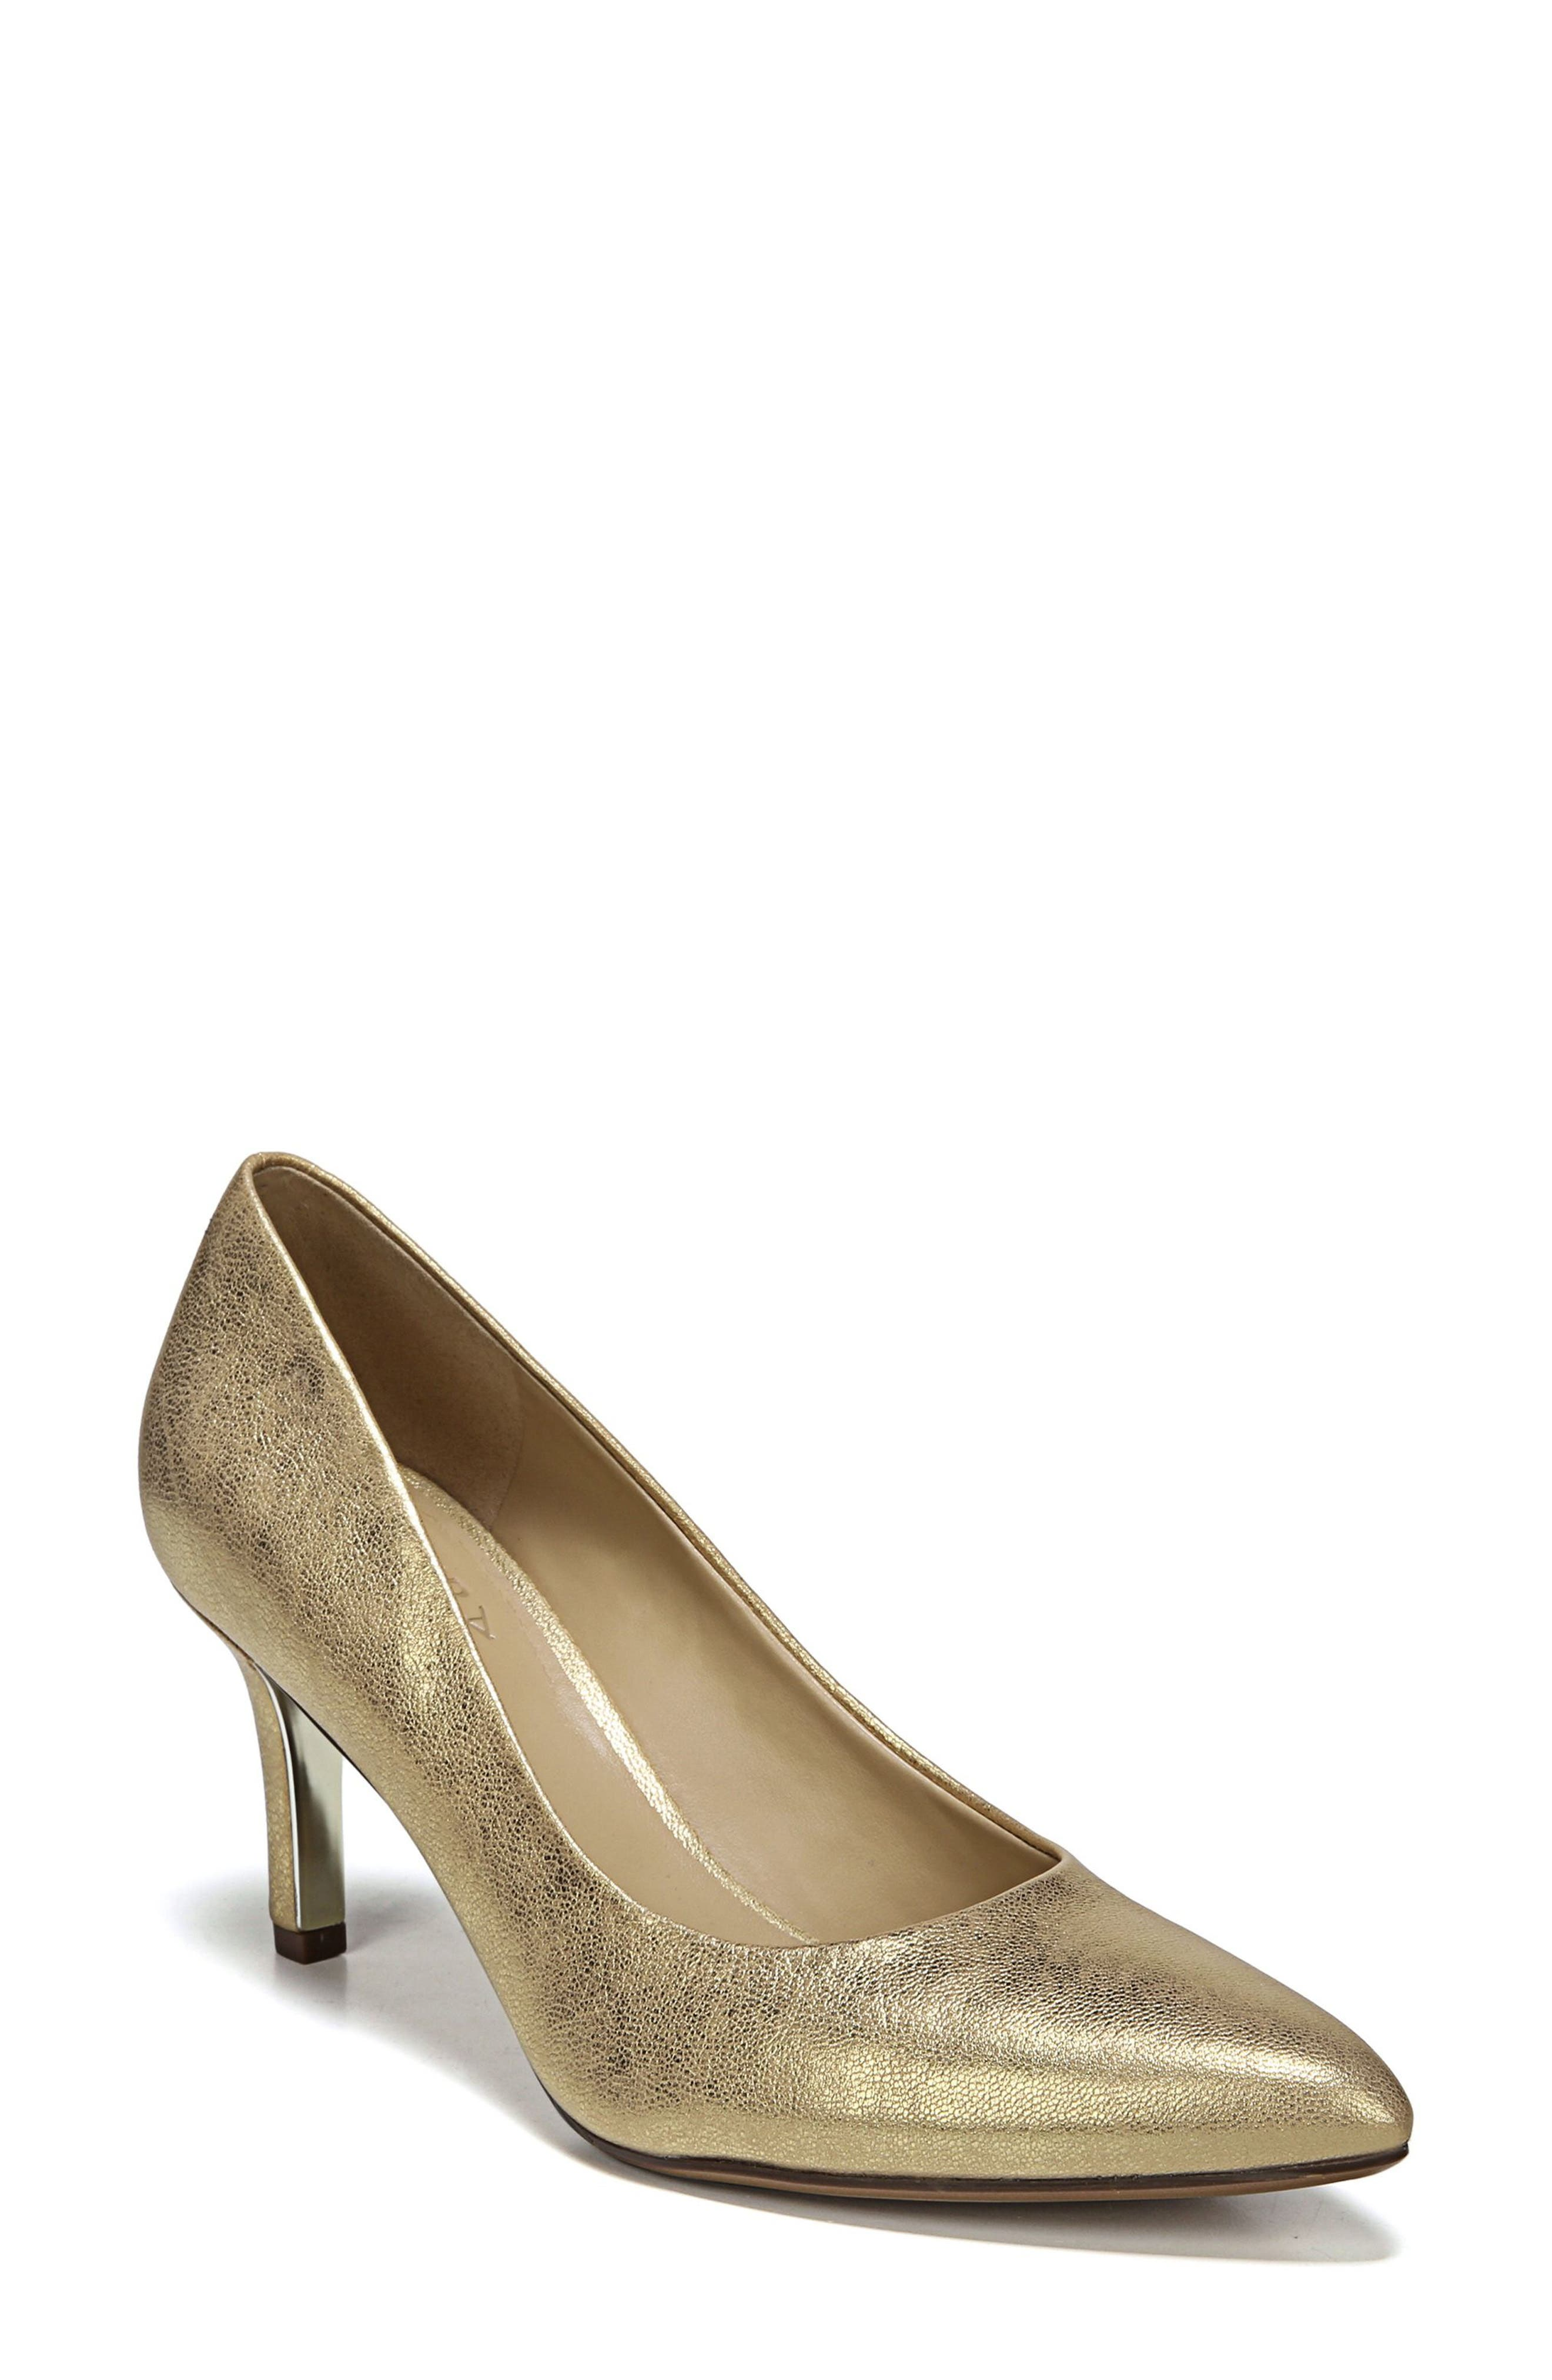 NATURALIZER, Natalie Pointy Toe Pump, Alternate thumbnail 8, color, GOLD LEATHER